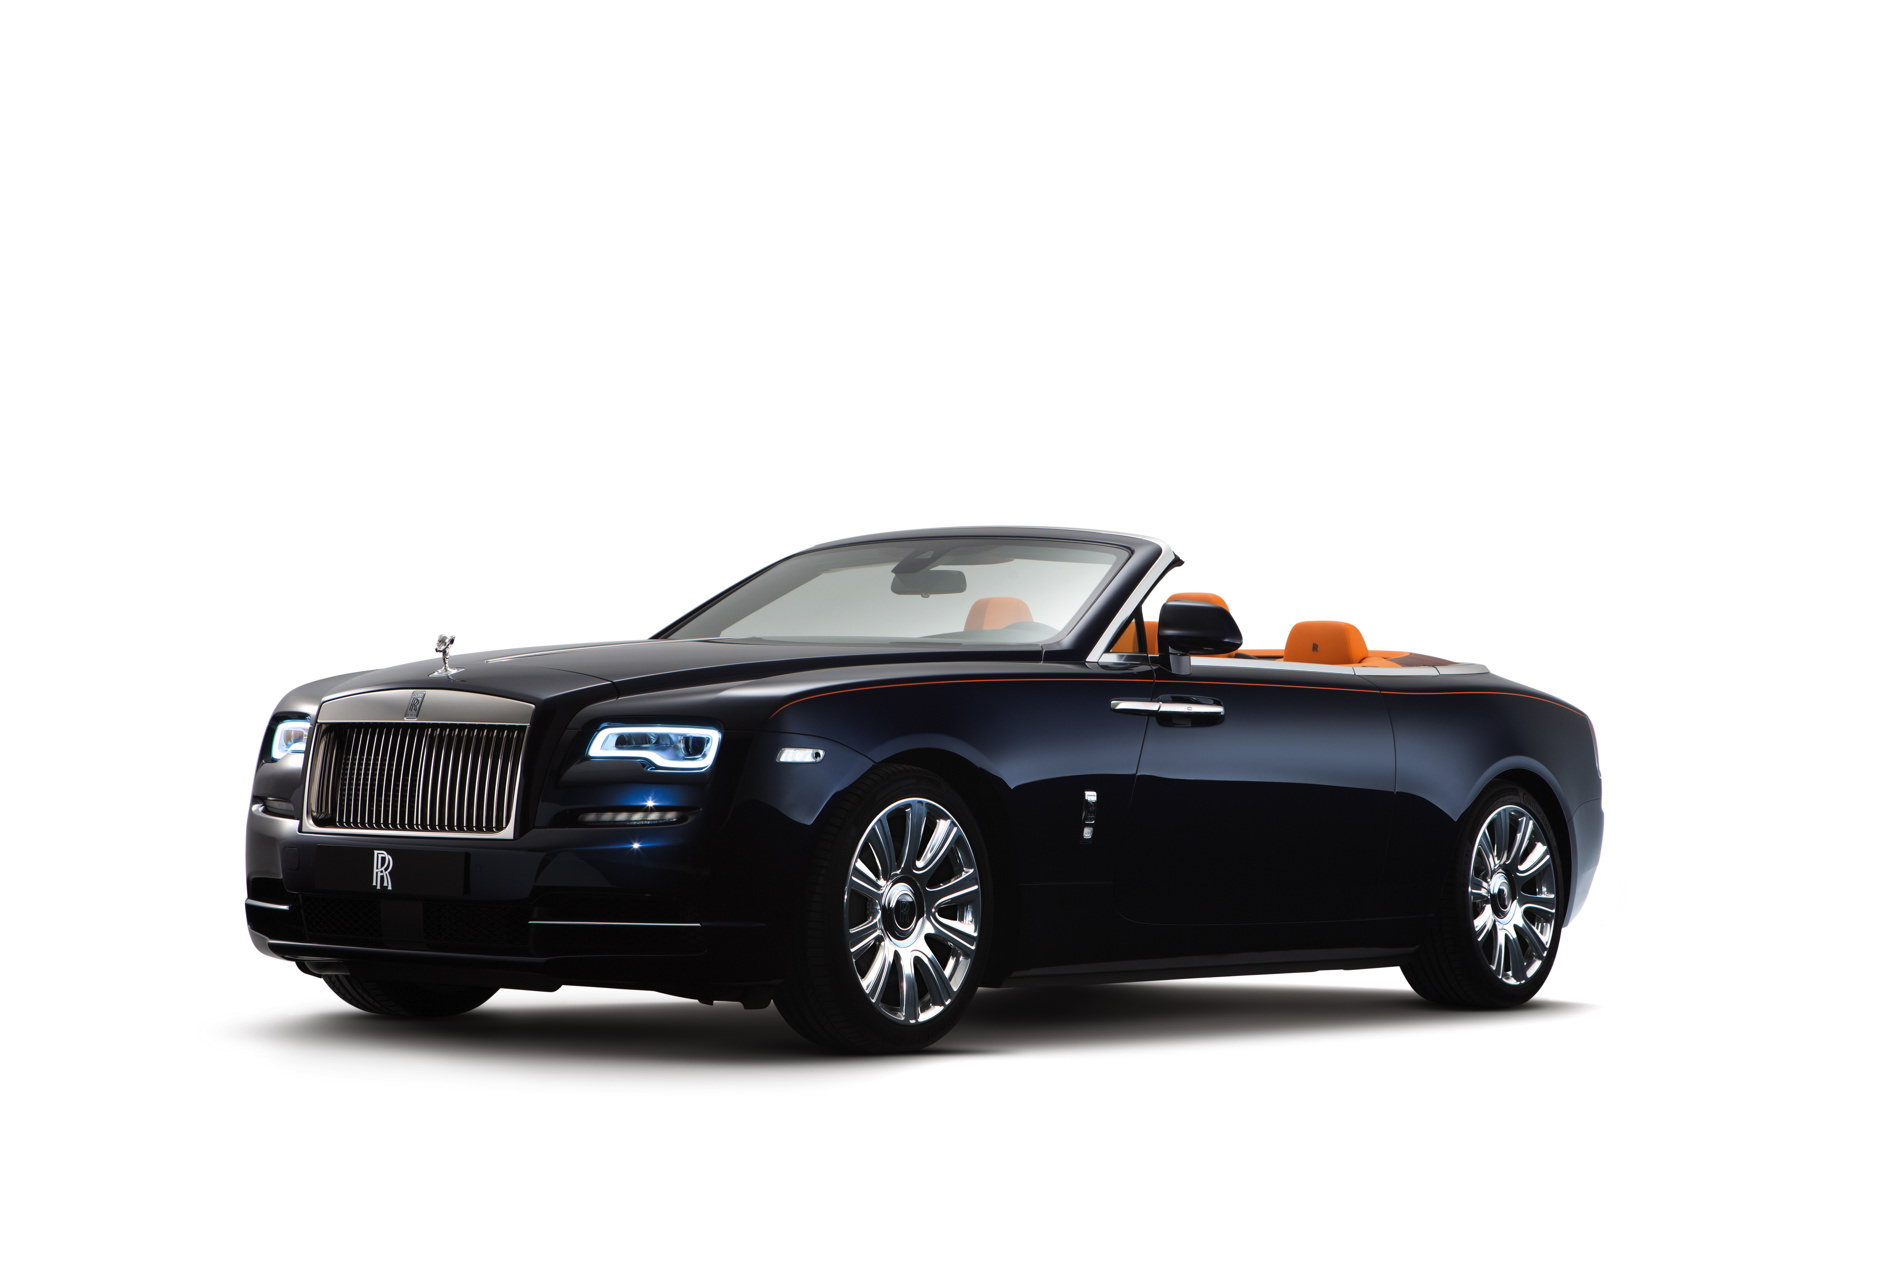 Rolls Royce Dawn images 1900x1200 21